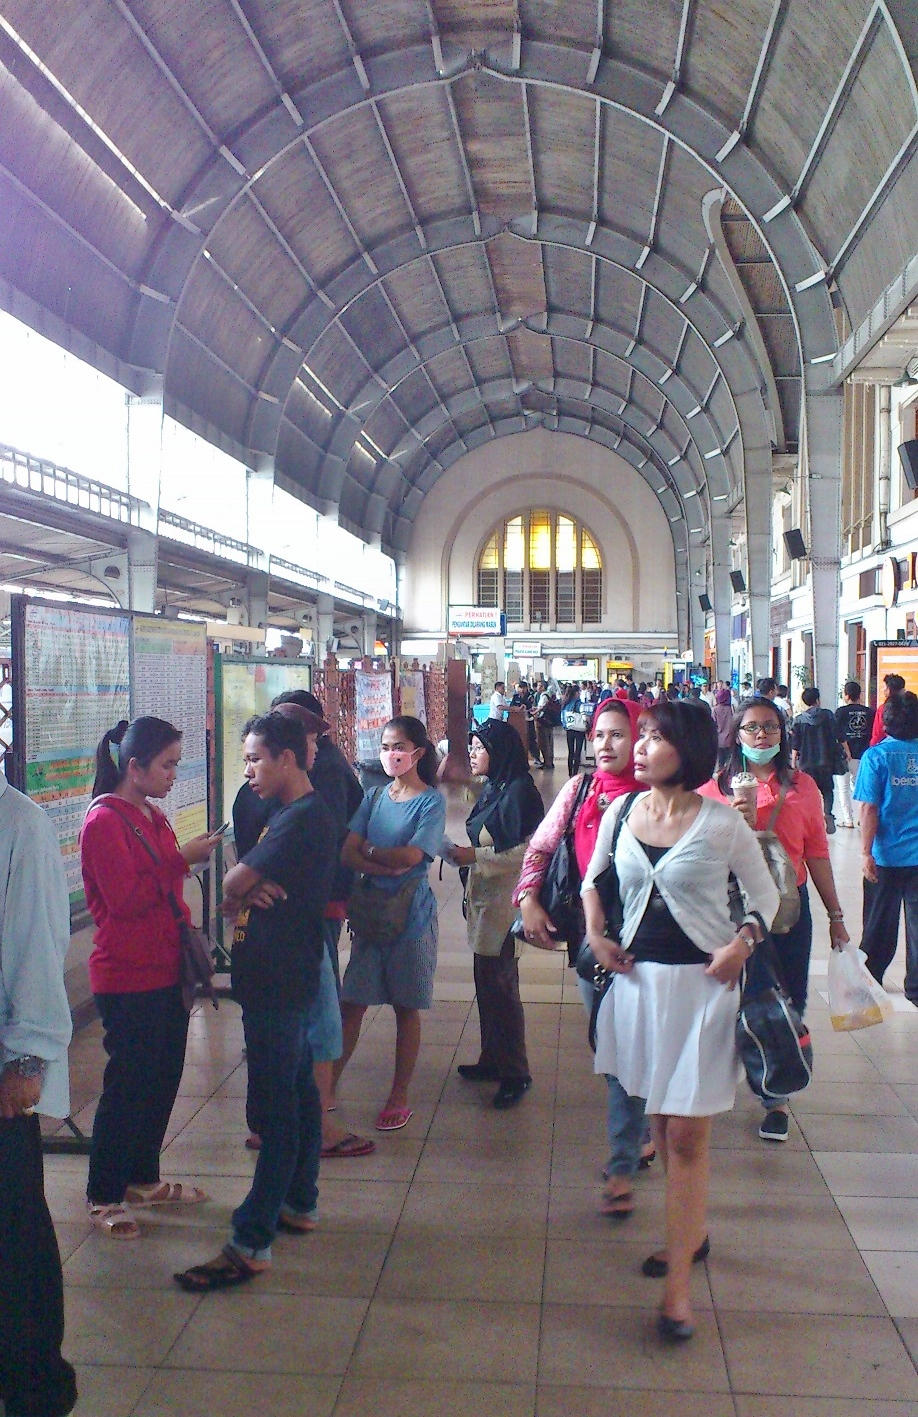 Inside the Station